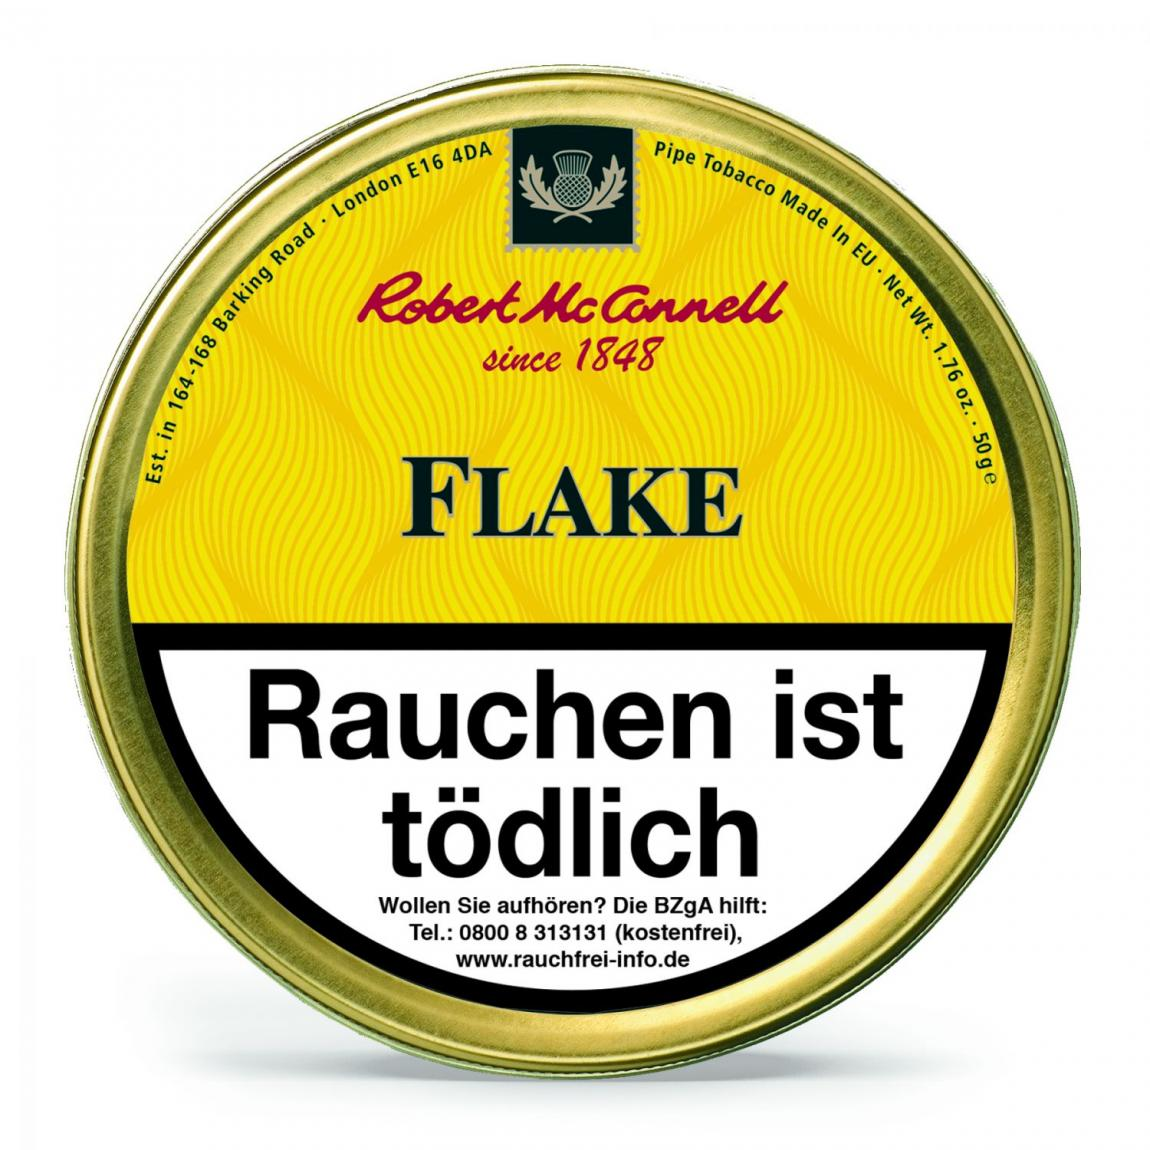 Robert McConnell Heritage »Flake« 50g